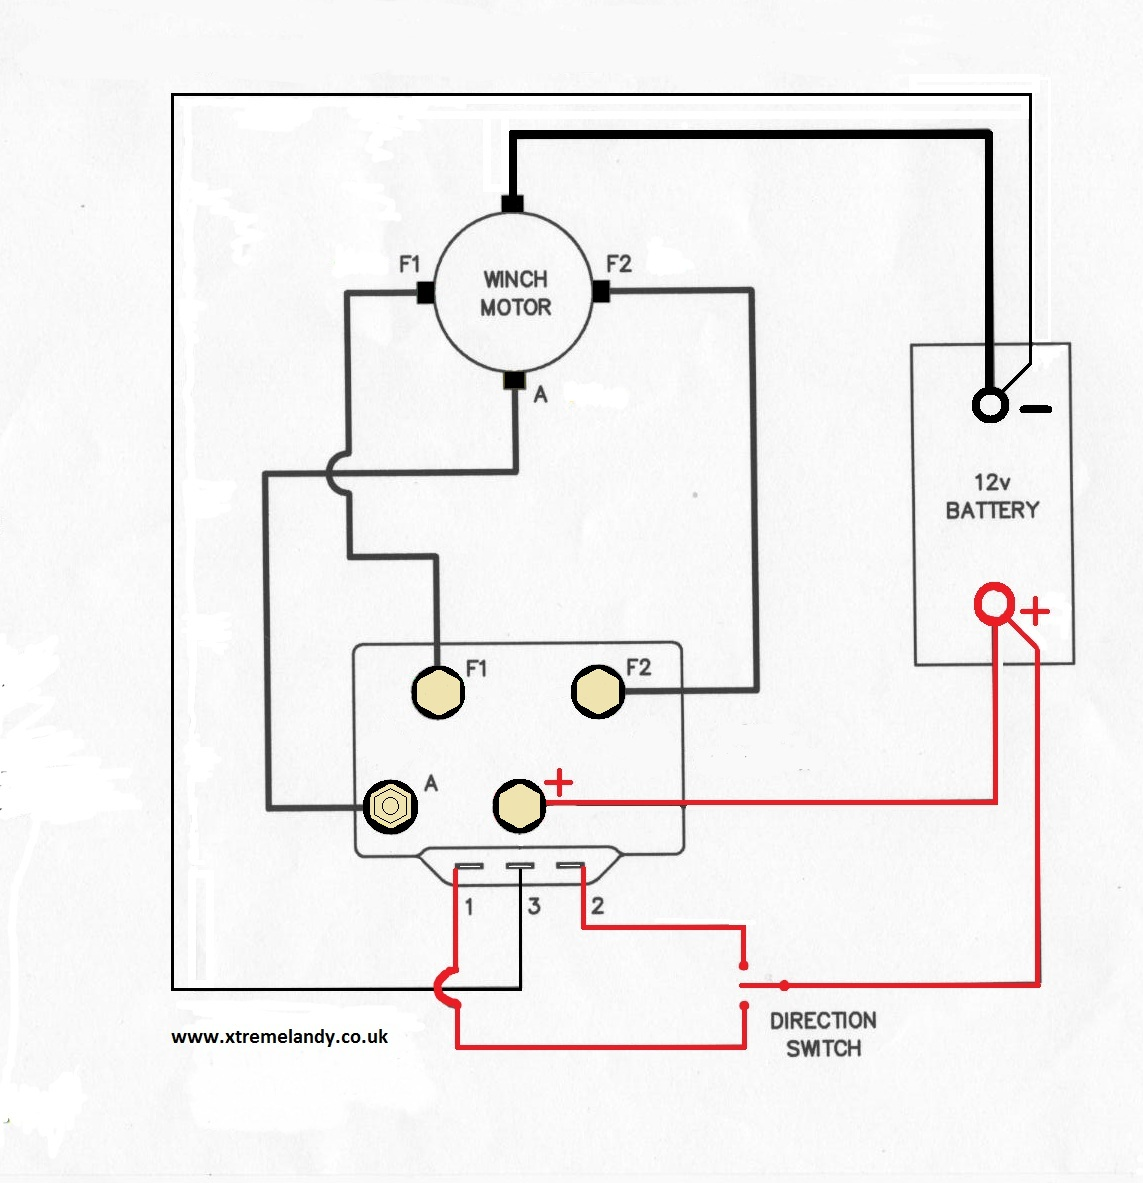 wiring diagram for a starter solenoid wirdig car wiring diagram furthermore vw dune buggy engine wiring diagram